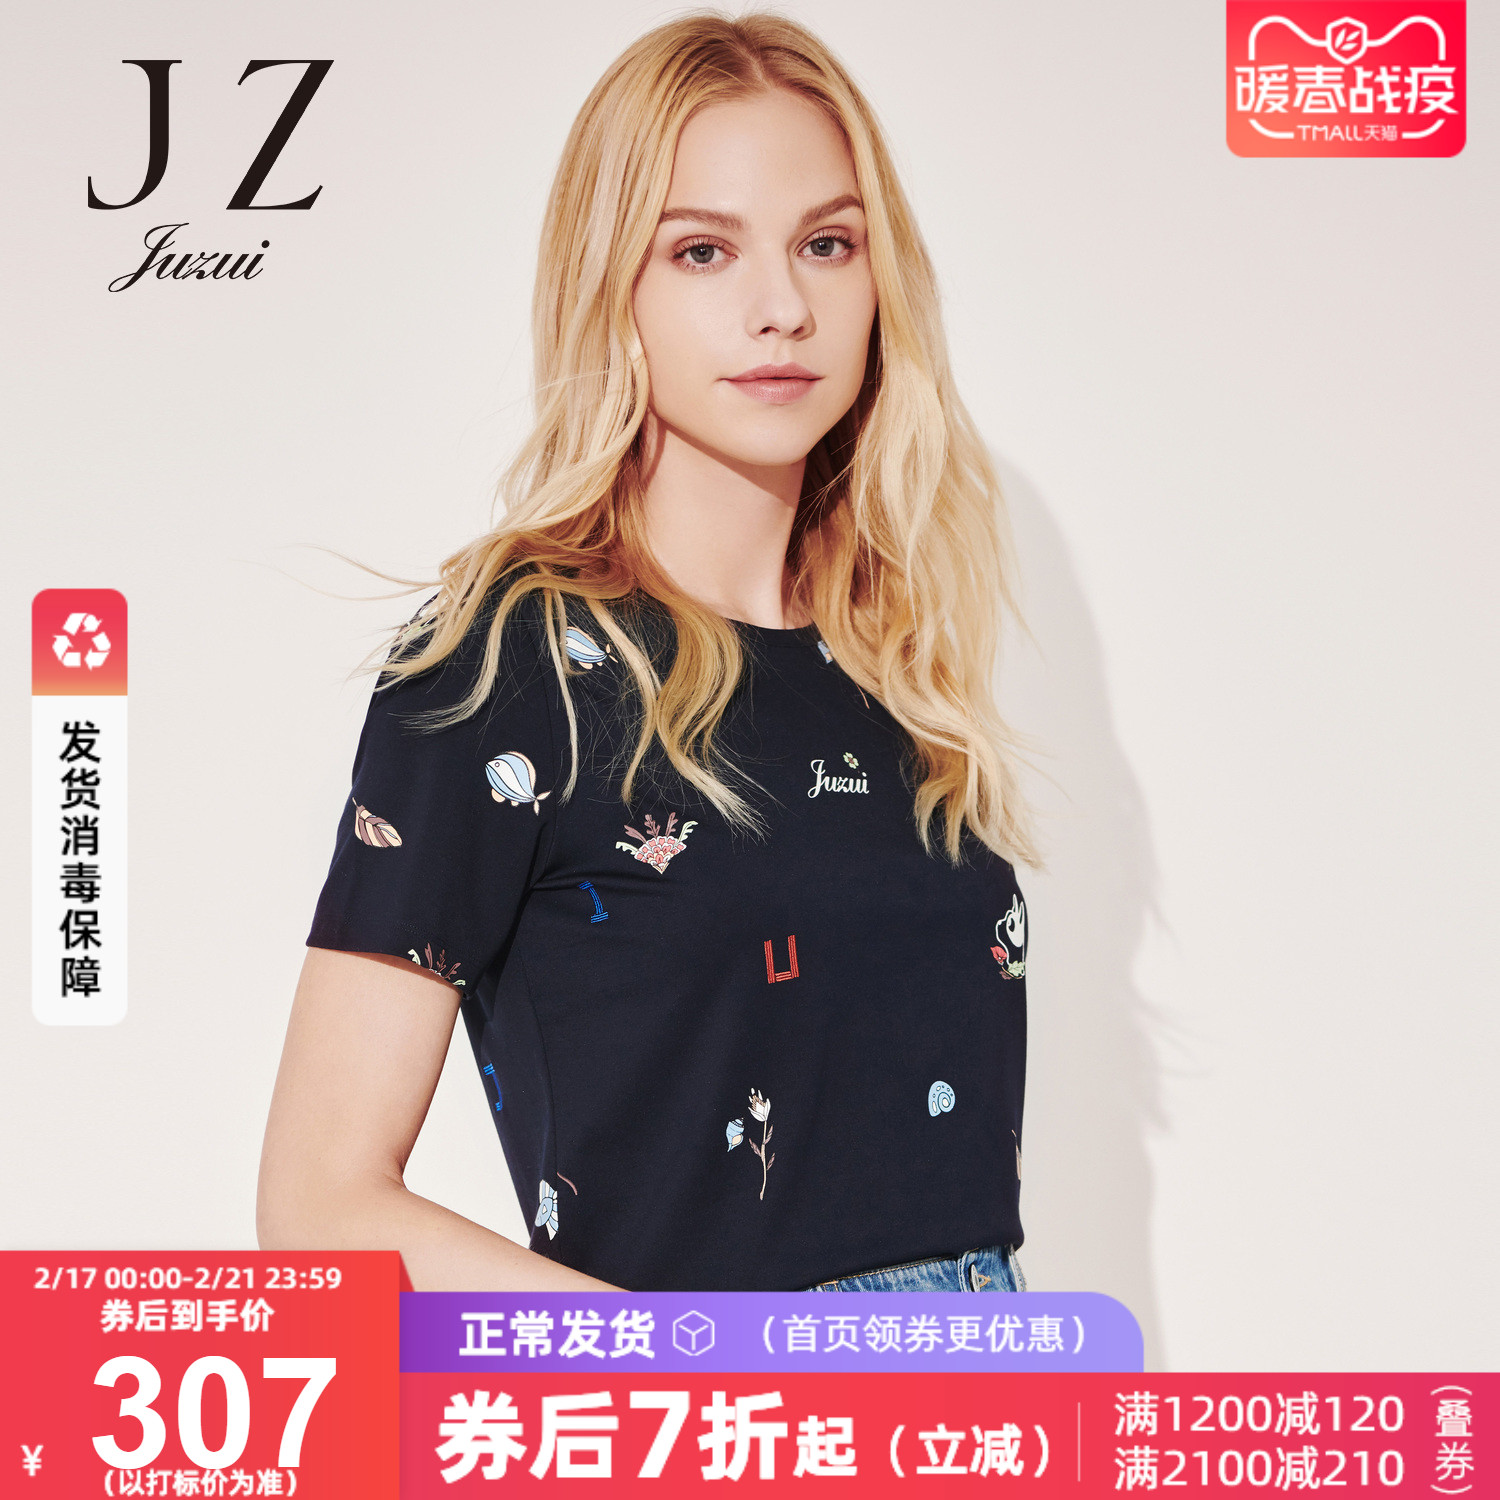 JUZUI/Ningzi Official Flagship Shop New Fashion Leisure Offset Printed T-shirt Top